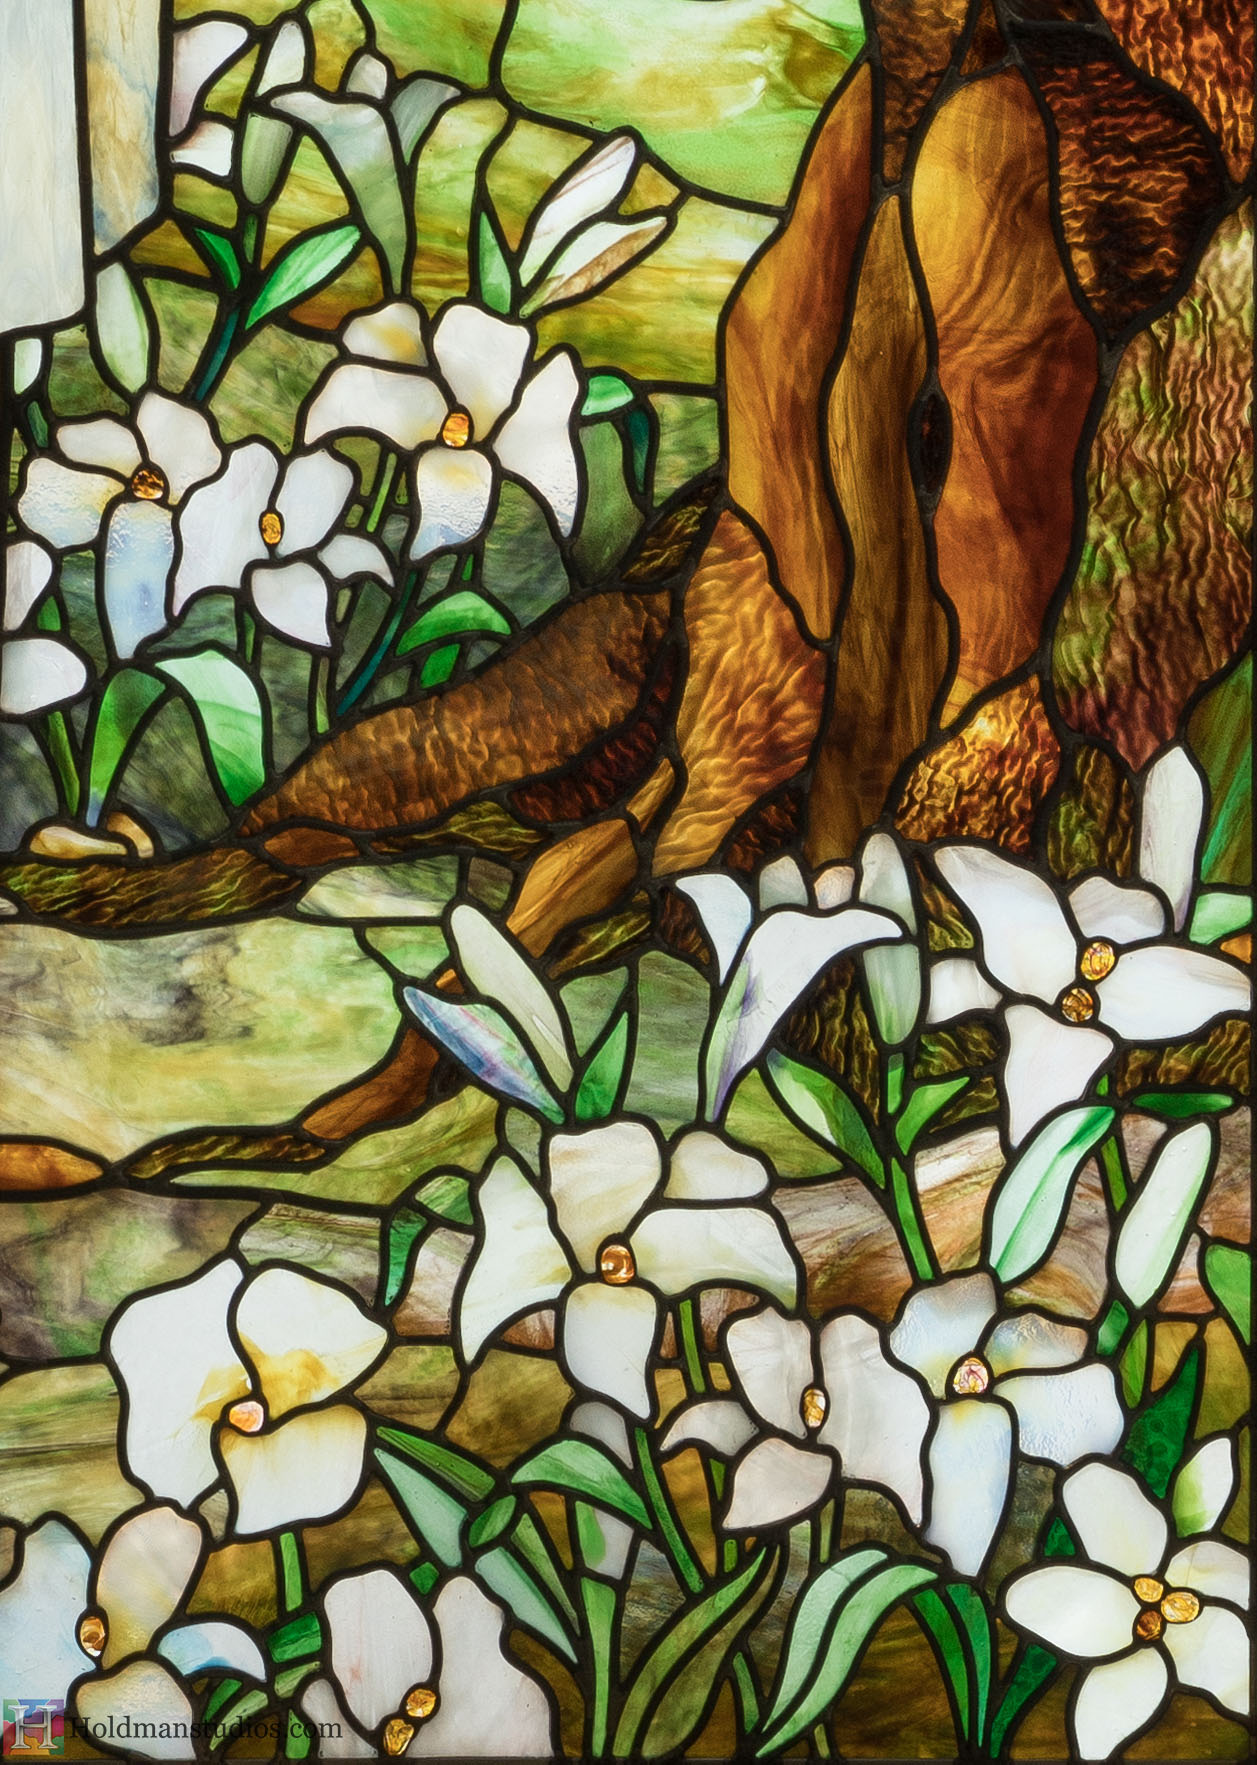 Holdman-Studios-Stained-Glass-Paris-LDS-Temple-Welcoming-Center-Madonna-Lily-Flowers-Leaves-Tree-Roots-Window-Crop.jpg